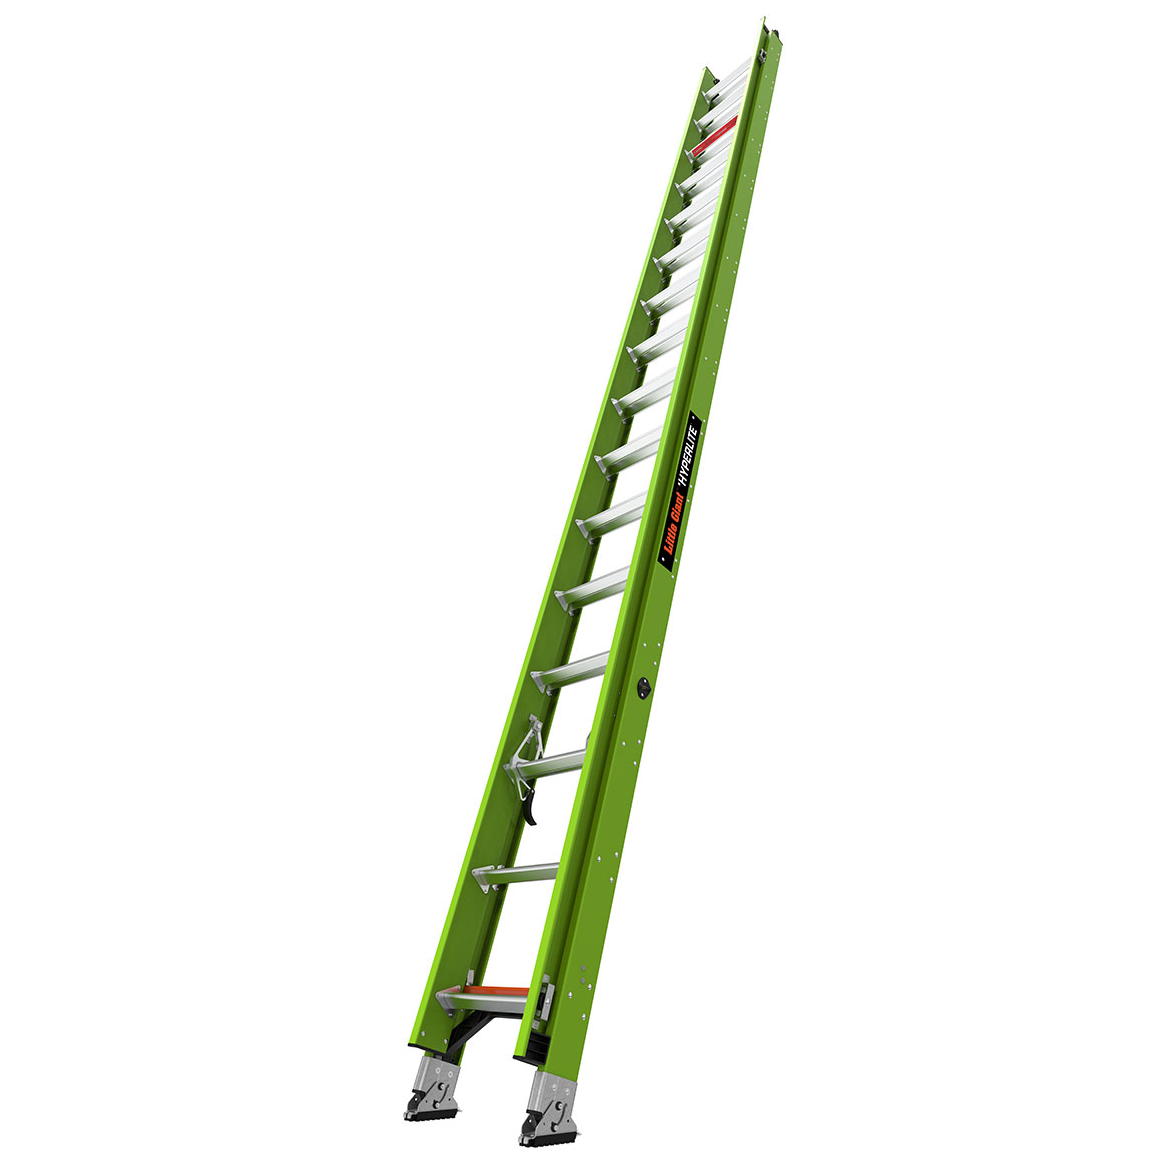 32 Ft. HyperLite Fiberglass Extension Ladder - Type IAA